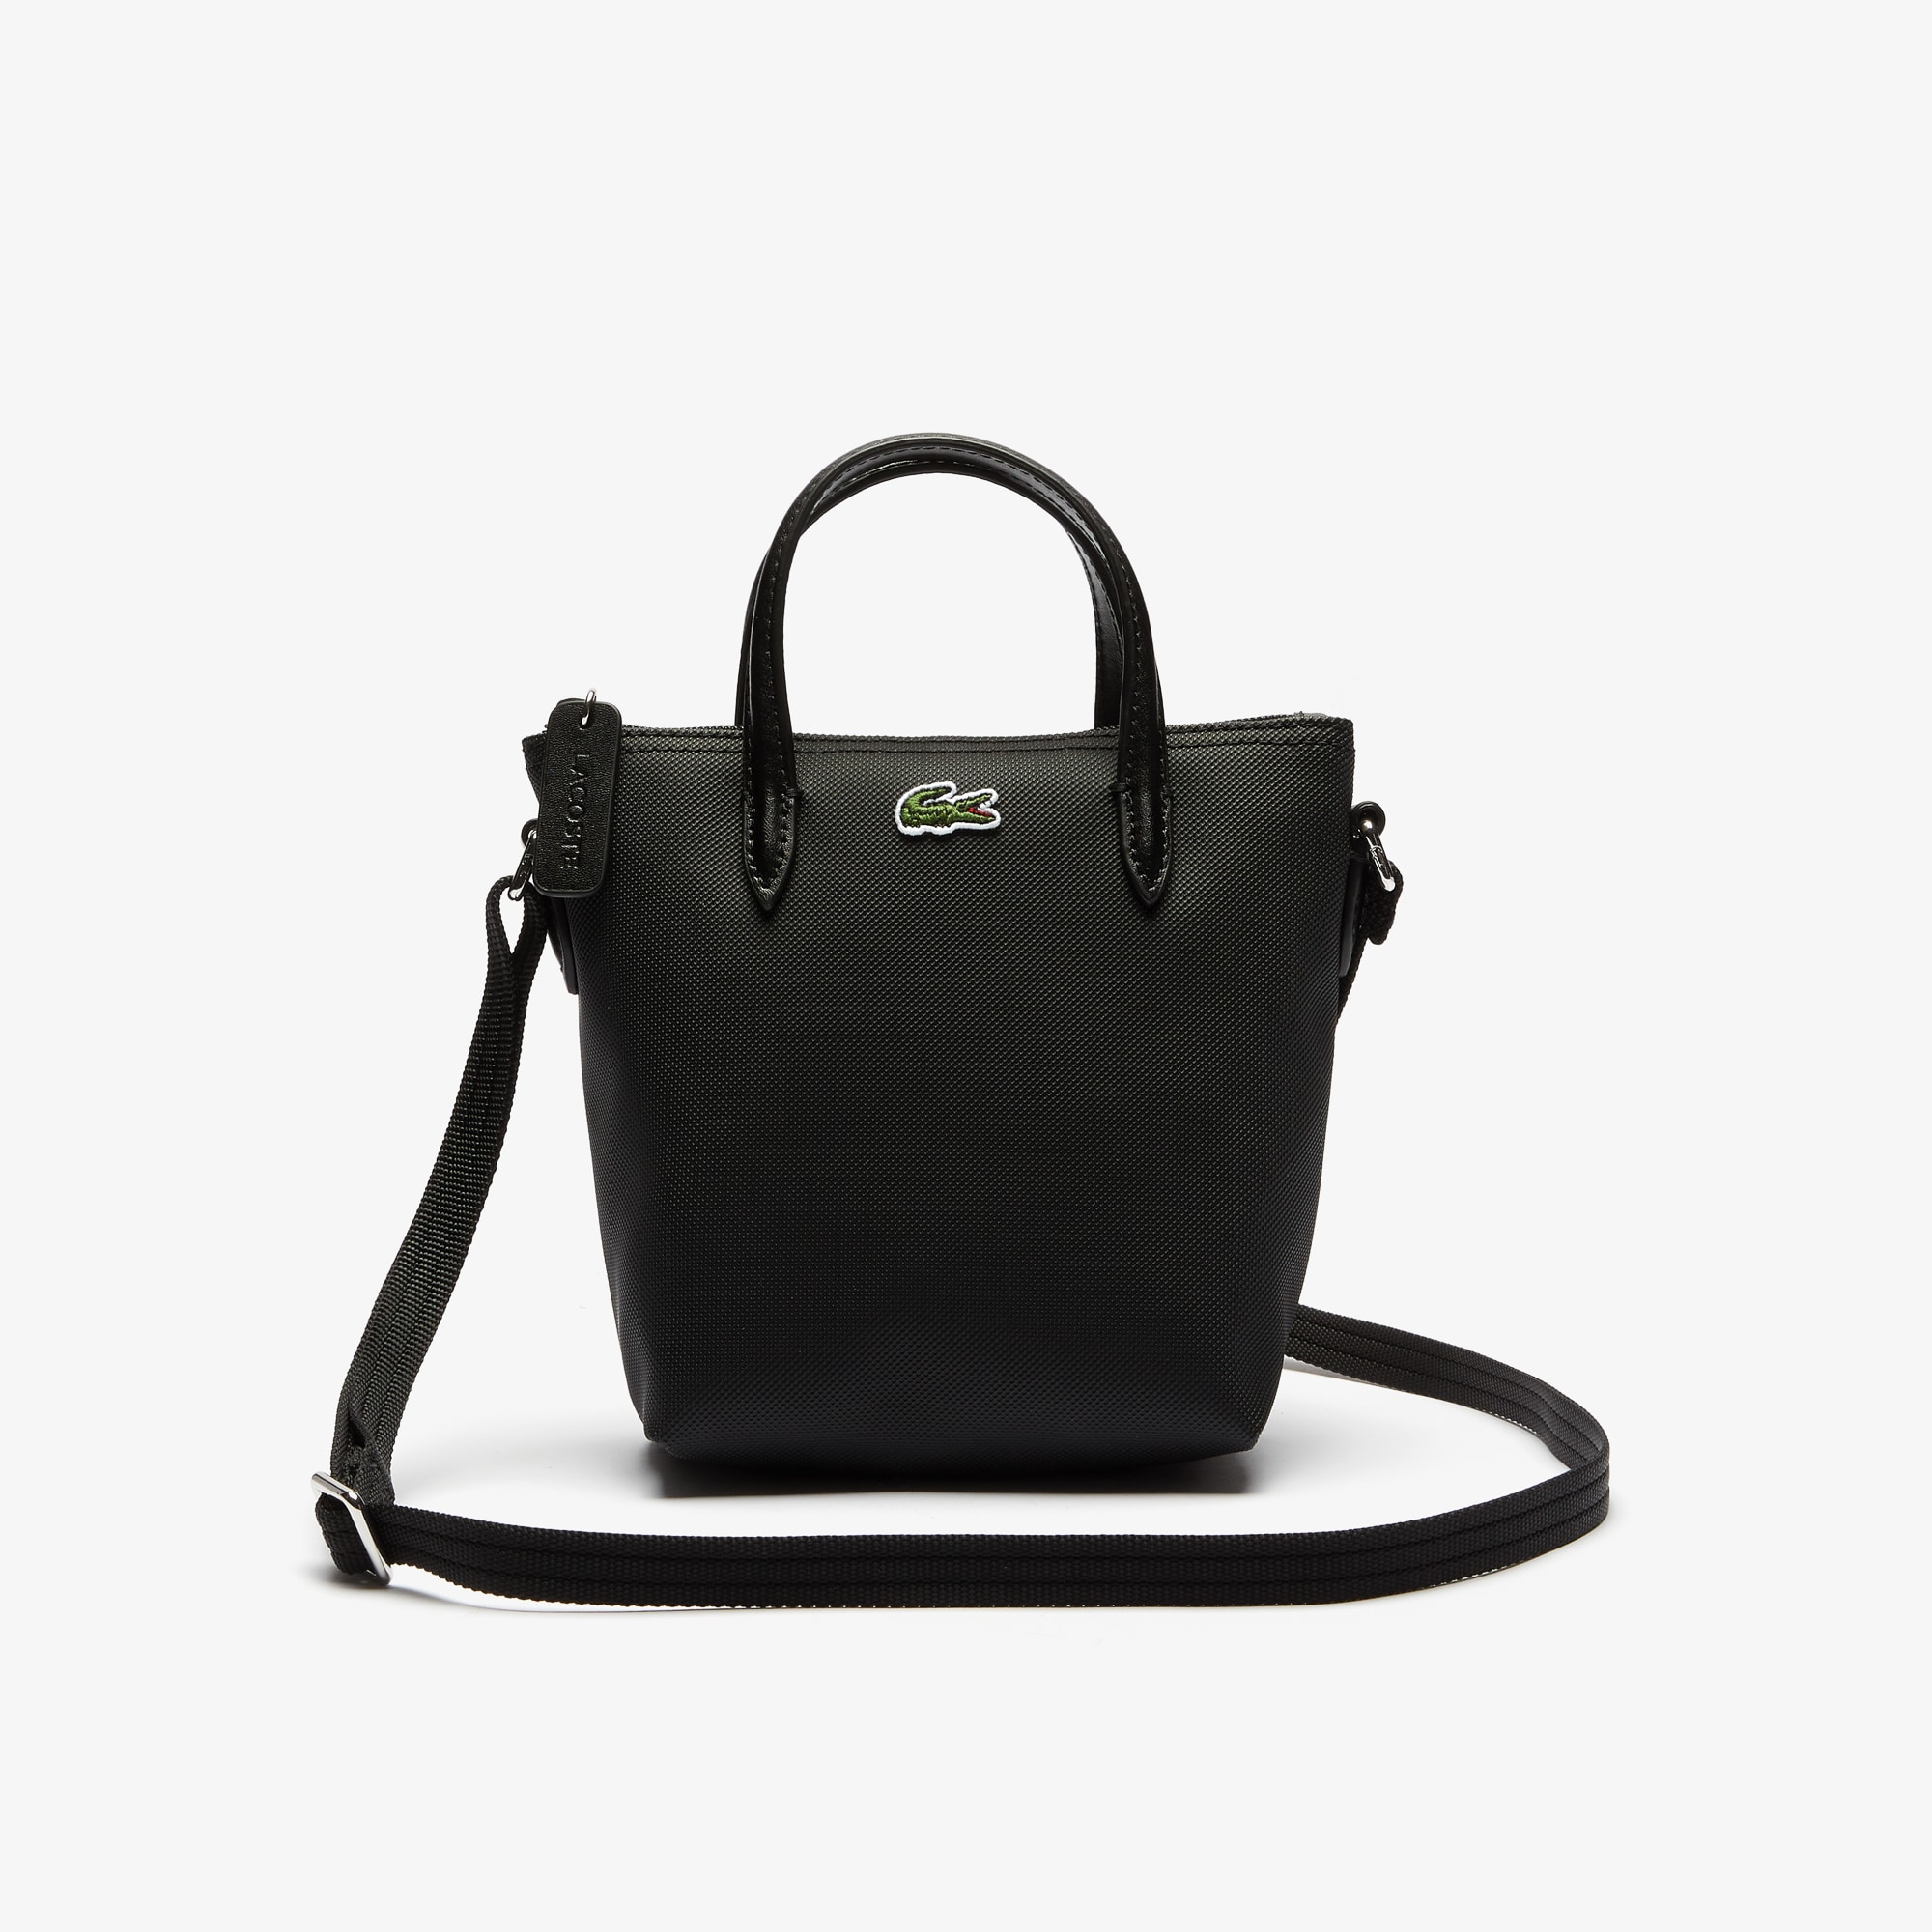 b730531269c Purses and Handbags |Clutches and Totes | LACOSTE